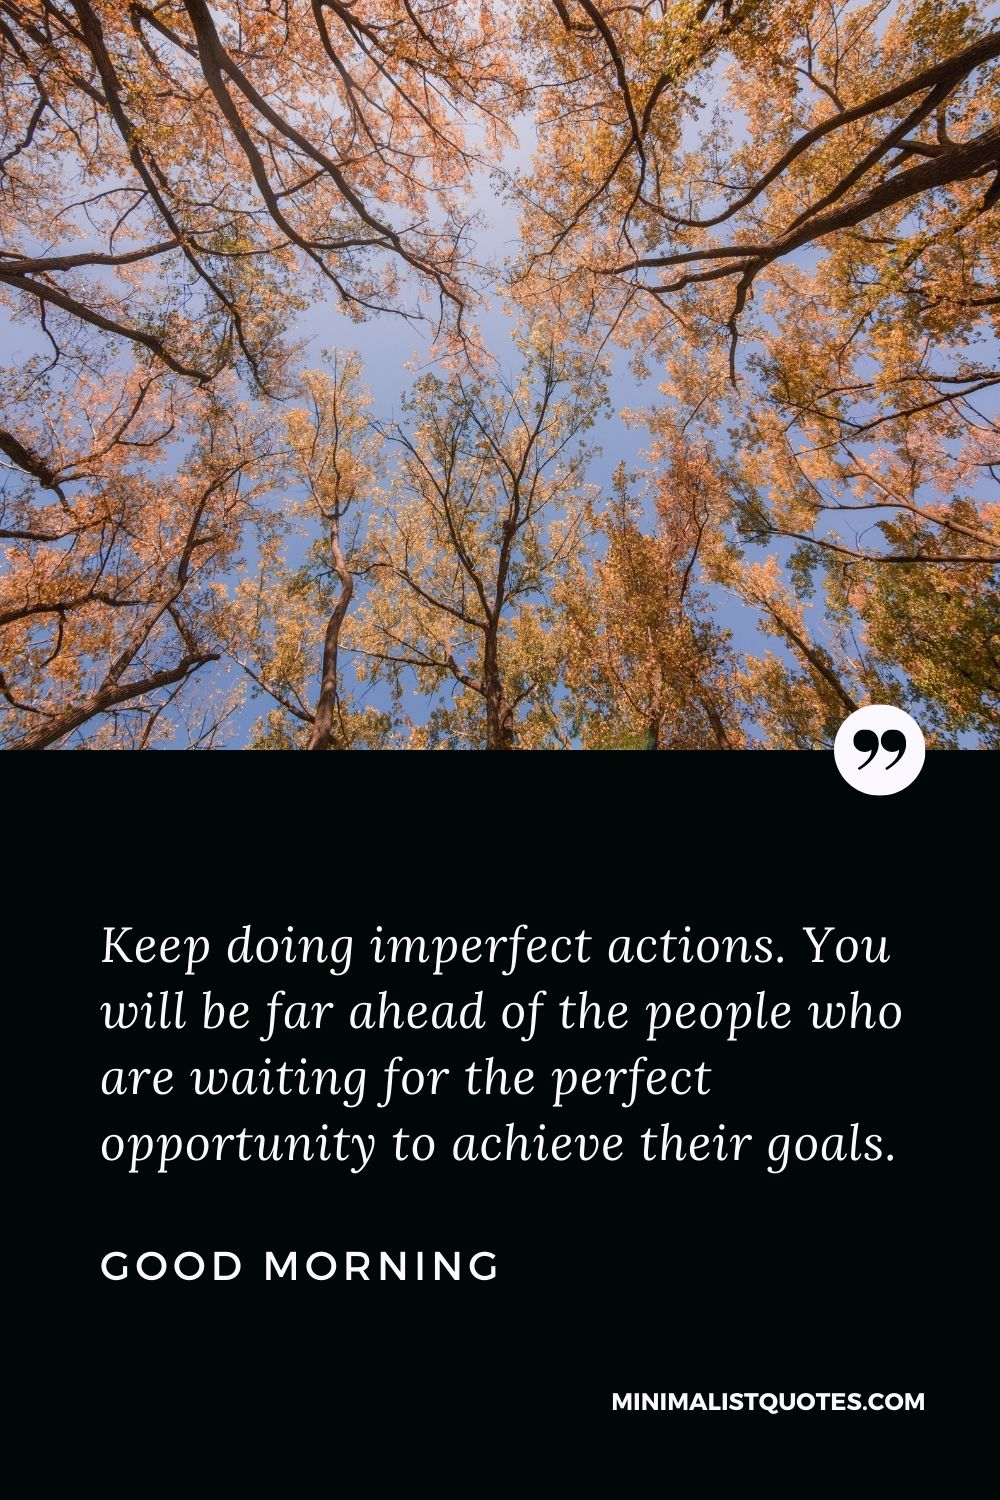 Good Morning Wish & Message With Image: Keep doing imperfect actions. You will be far ahead of the people who are waiting for the perfect opportunity to achieve their goals.